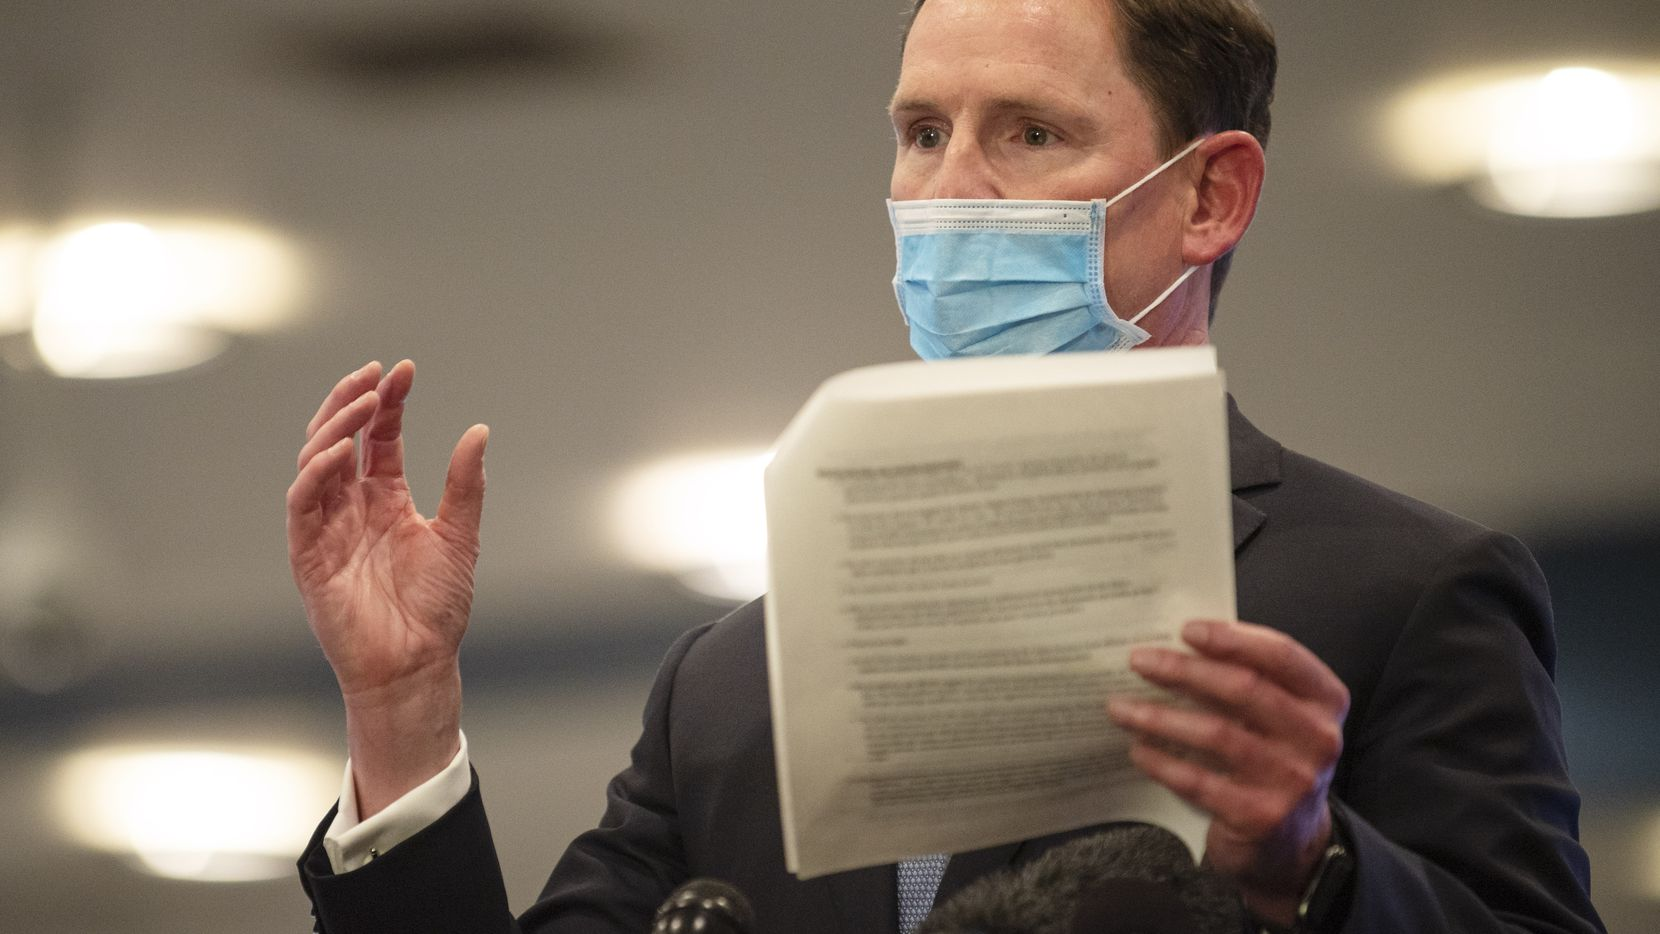 Dallas County Judge Clay Jenkins conducts a press conference about COVID-19 vaccine operations with FEMA, on Tuesday, Feb. 23, 2021 at Fair Park in Dallas.